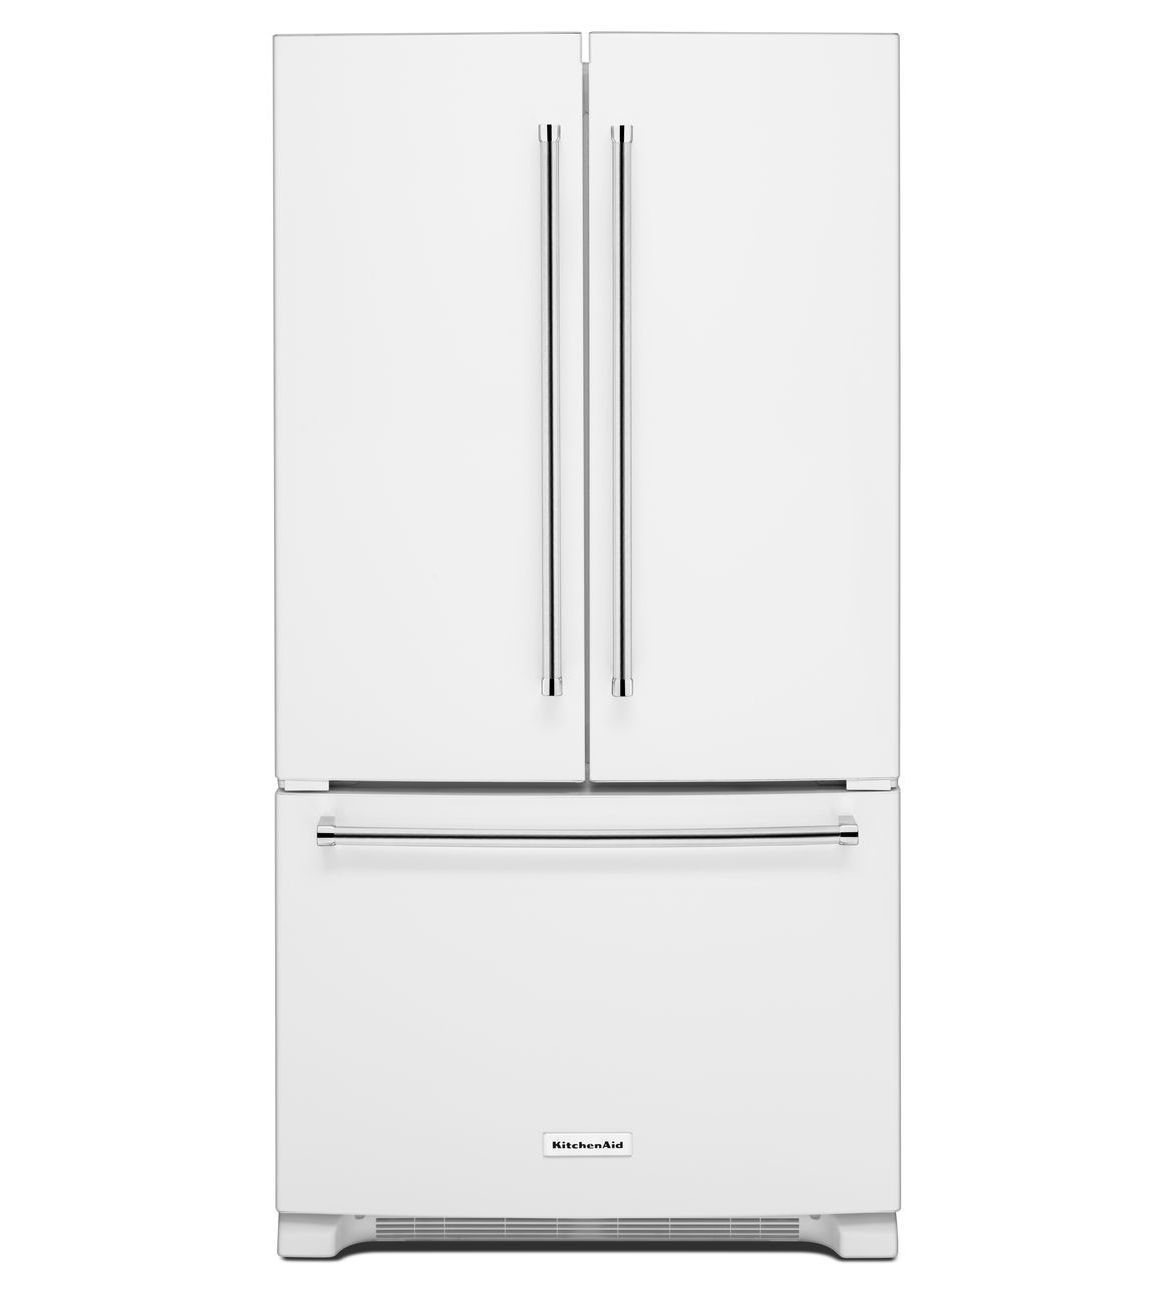 Uncategorized Kitchen Appliances Made In Usa 20 cu ft 36 inch width counter depth french door refrigerator find this pin and more on kitchen